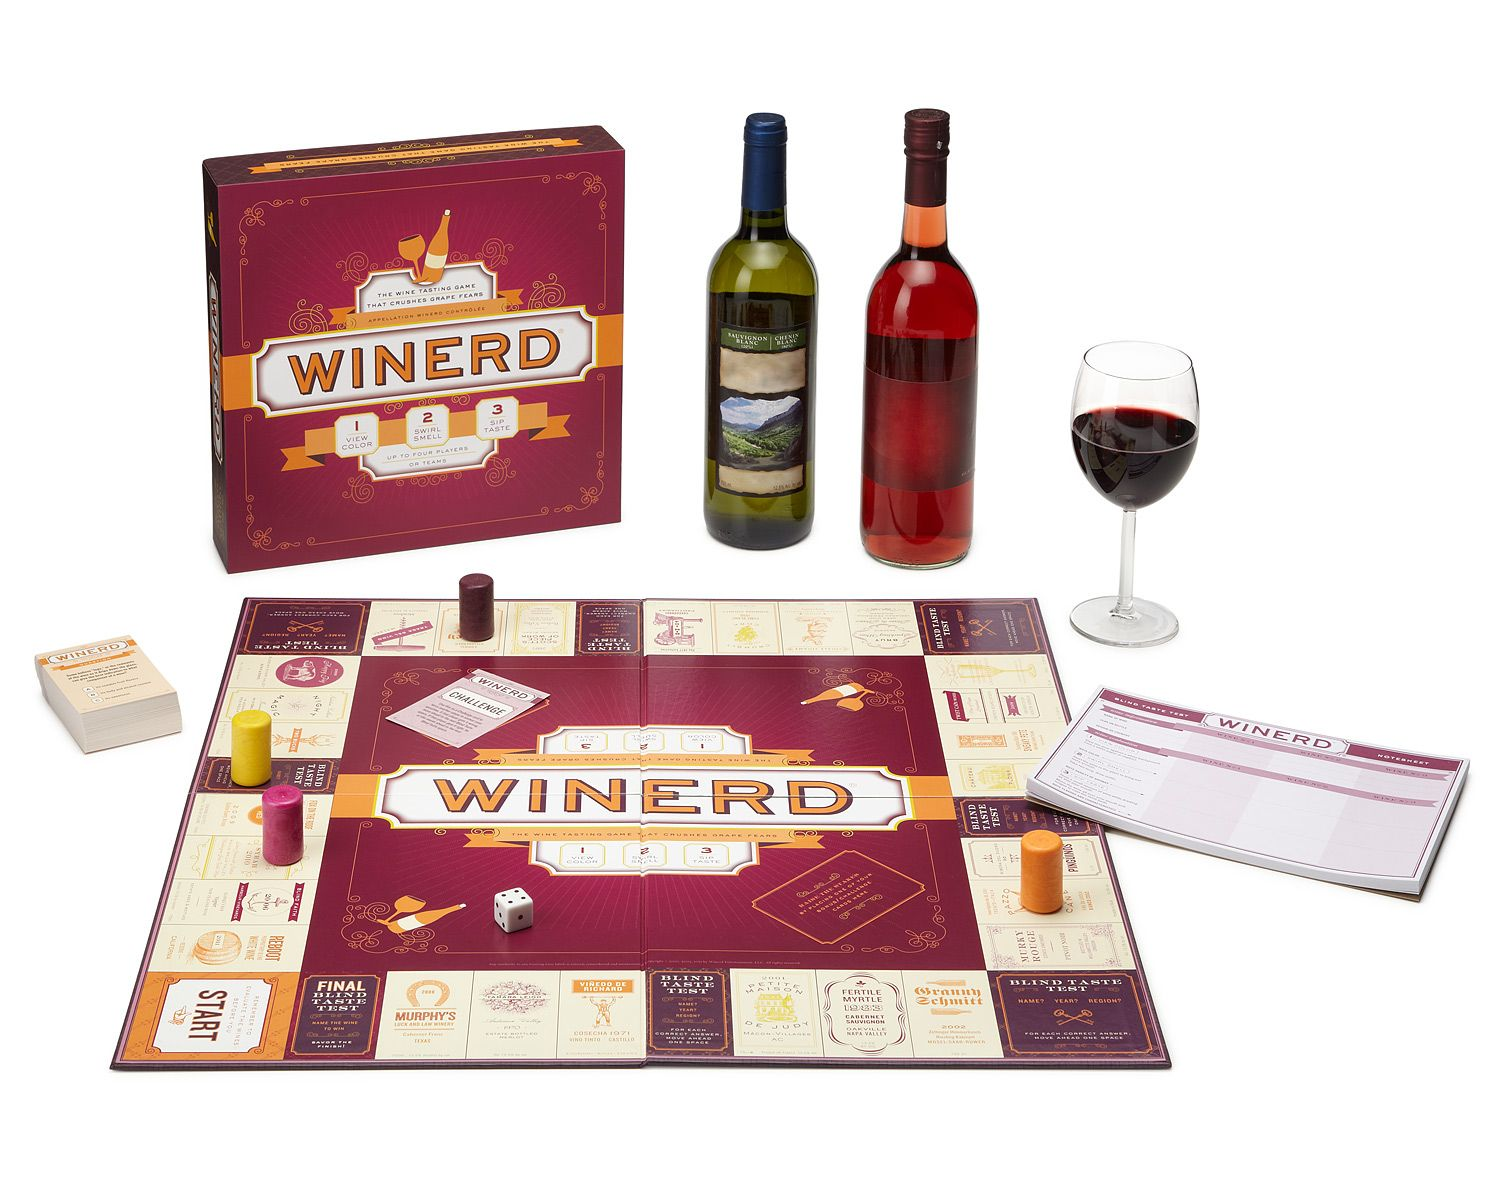 Winerd Game Wine Board Game Trivia Wine Games Gifts For Wine Lovers Wine Lovers